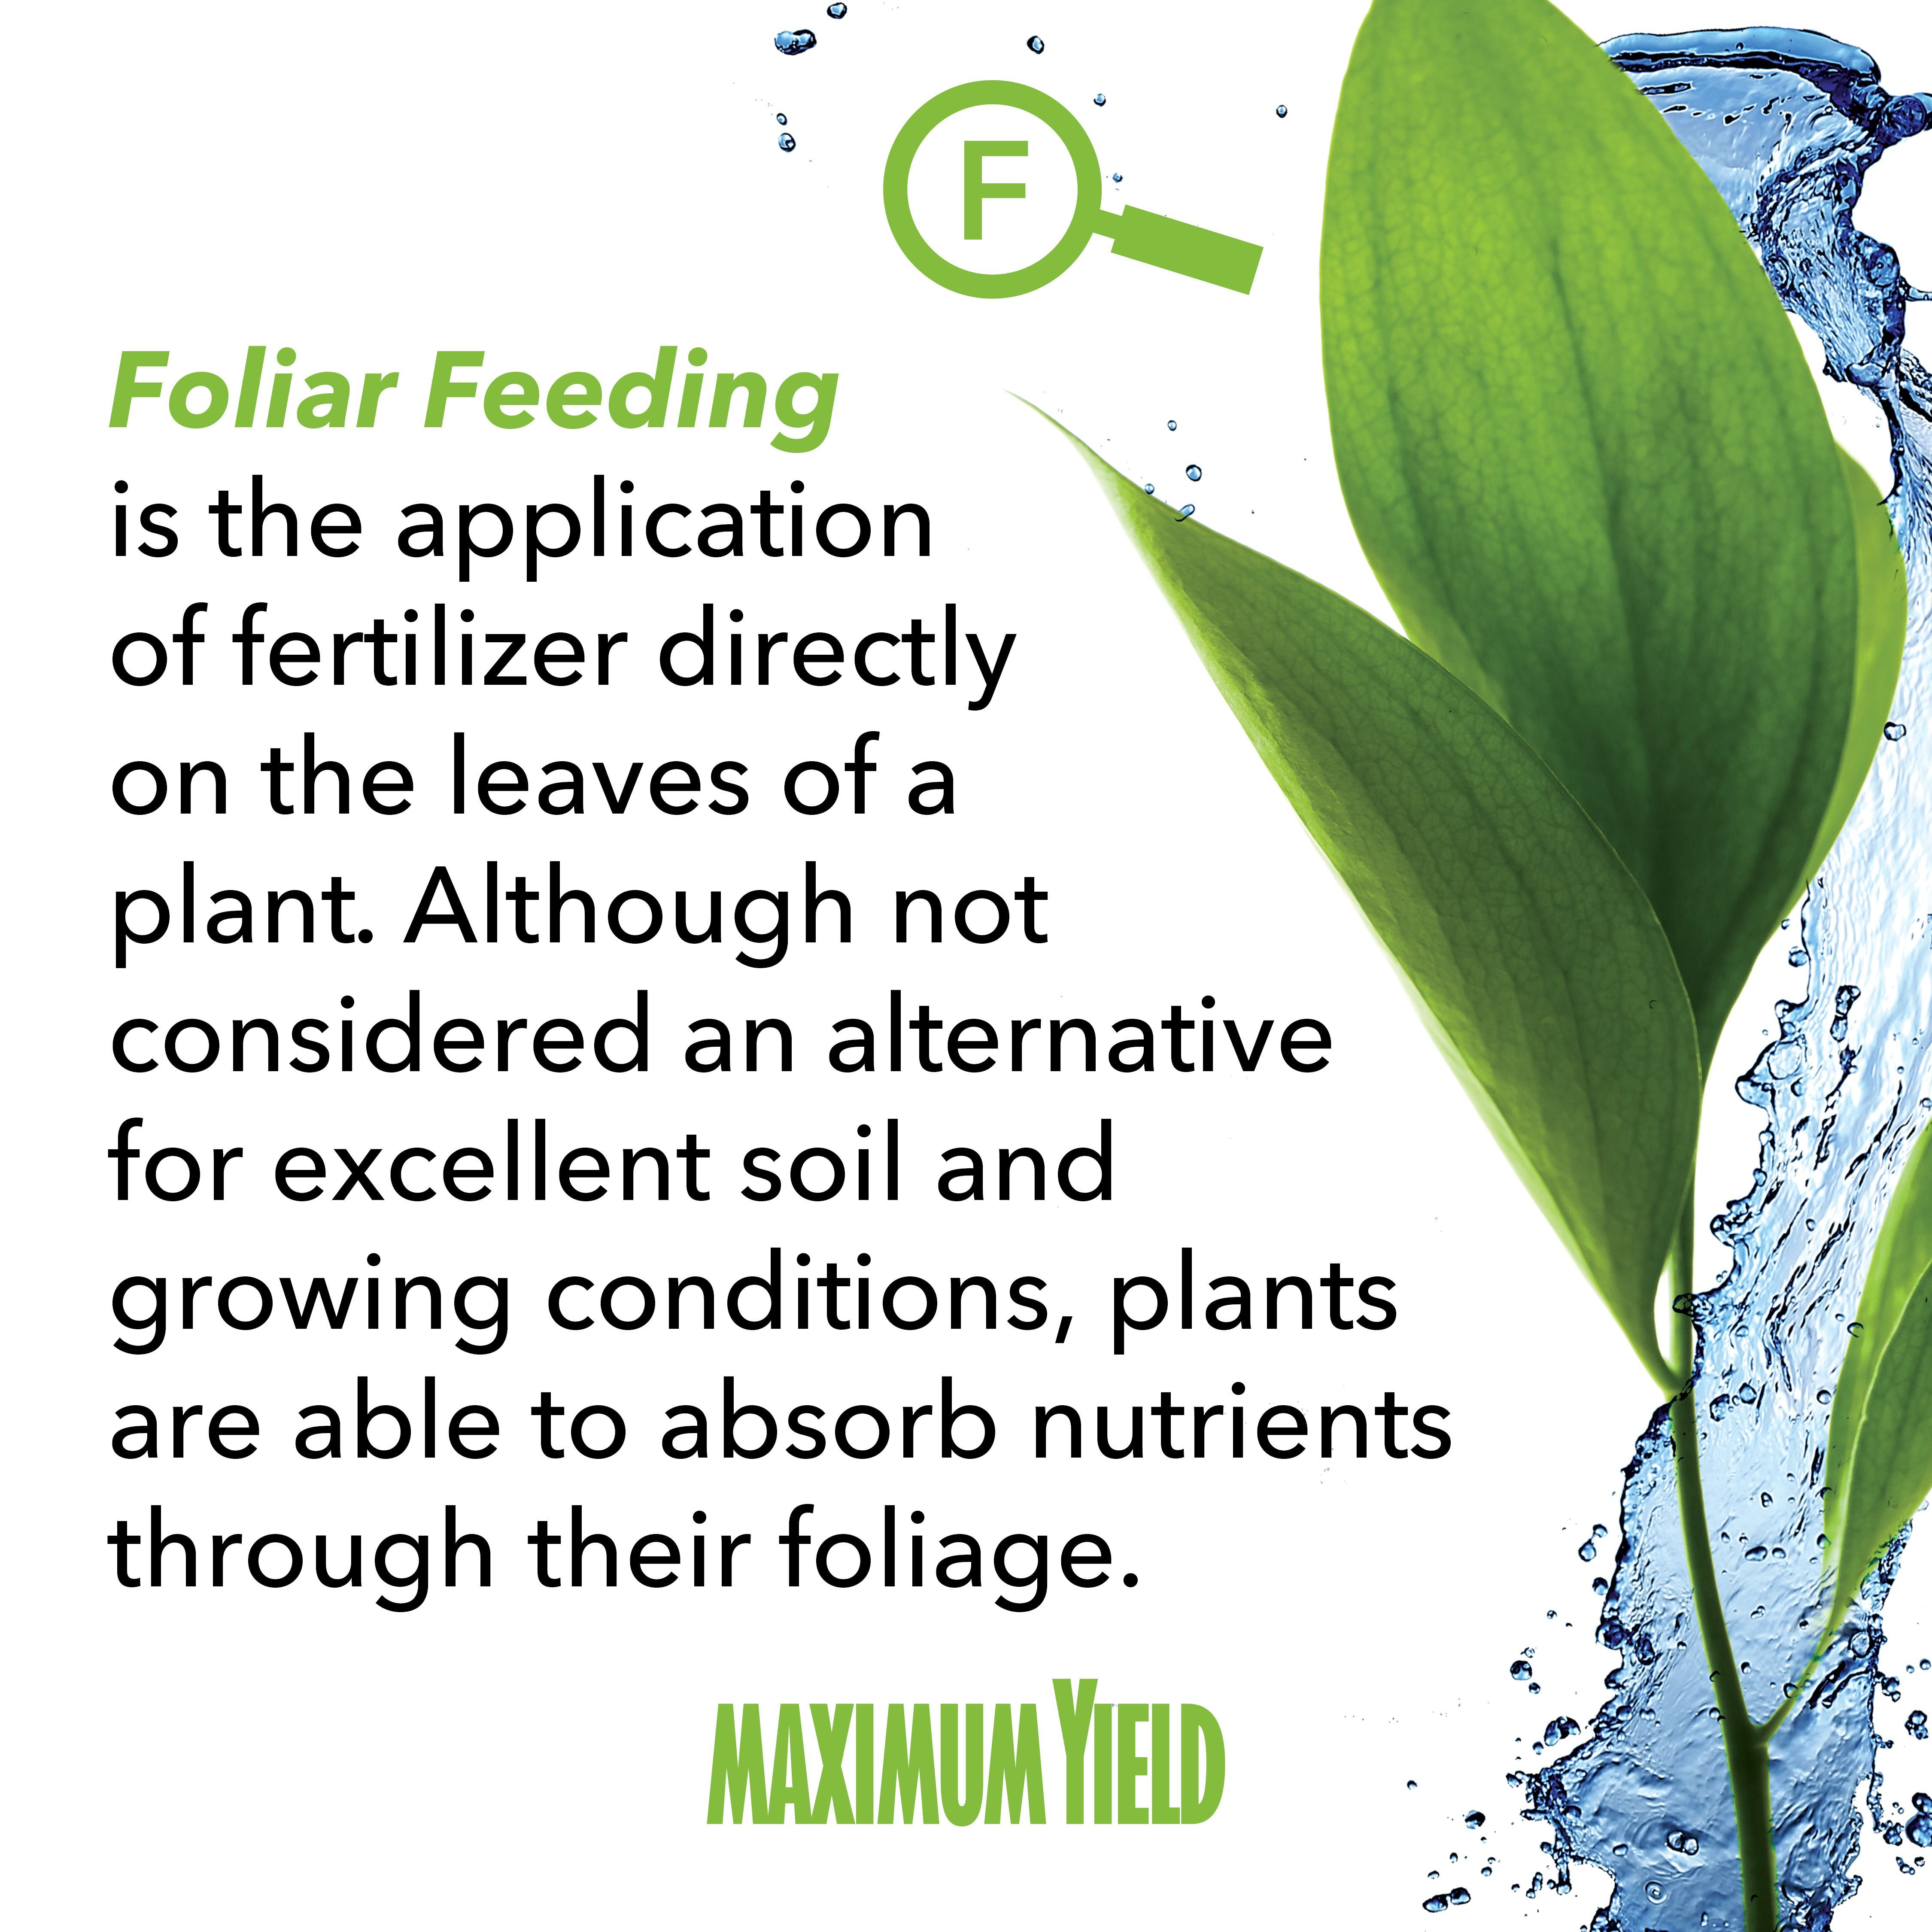 What Does Foliar Feeding Mean Is The Lication Of Fertilizer Directly On Leaves A Plant Although Not Considered An Alternative For